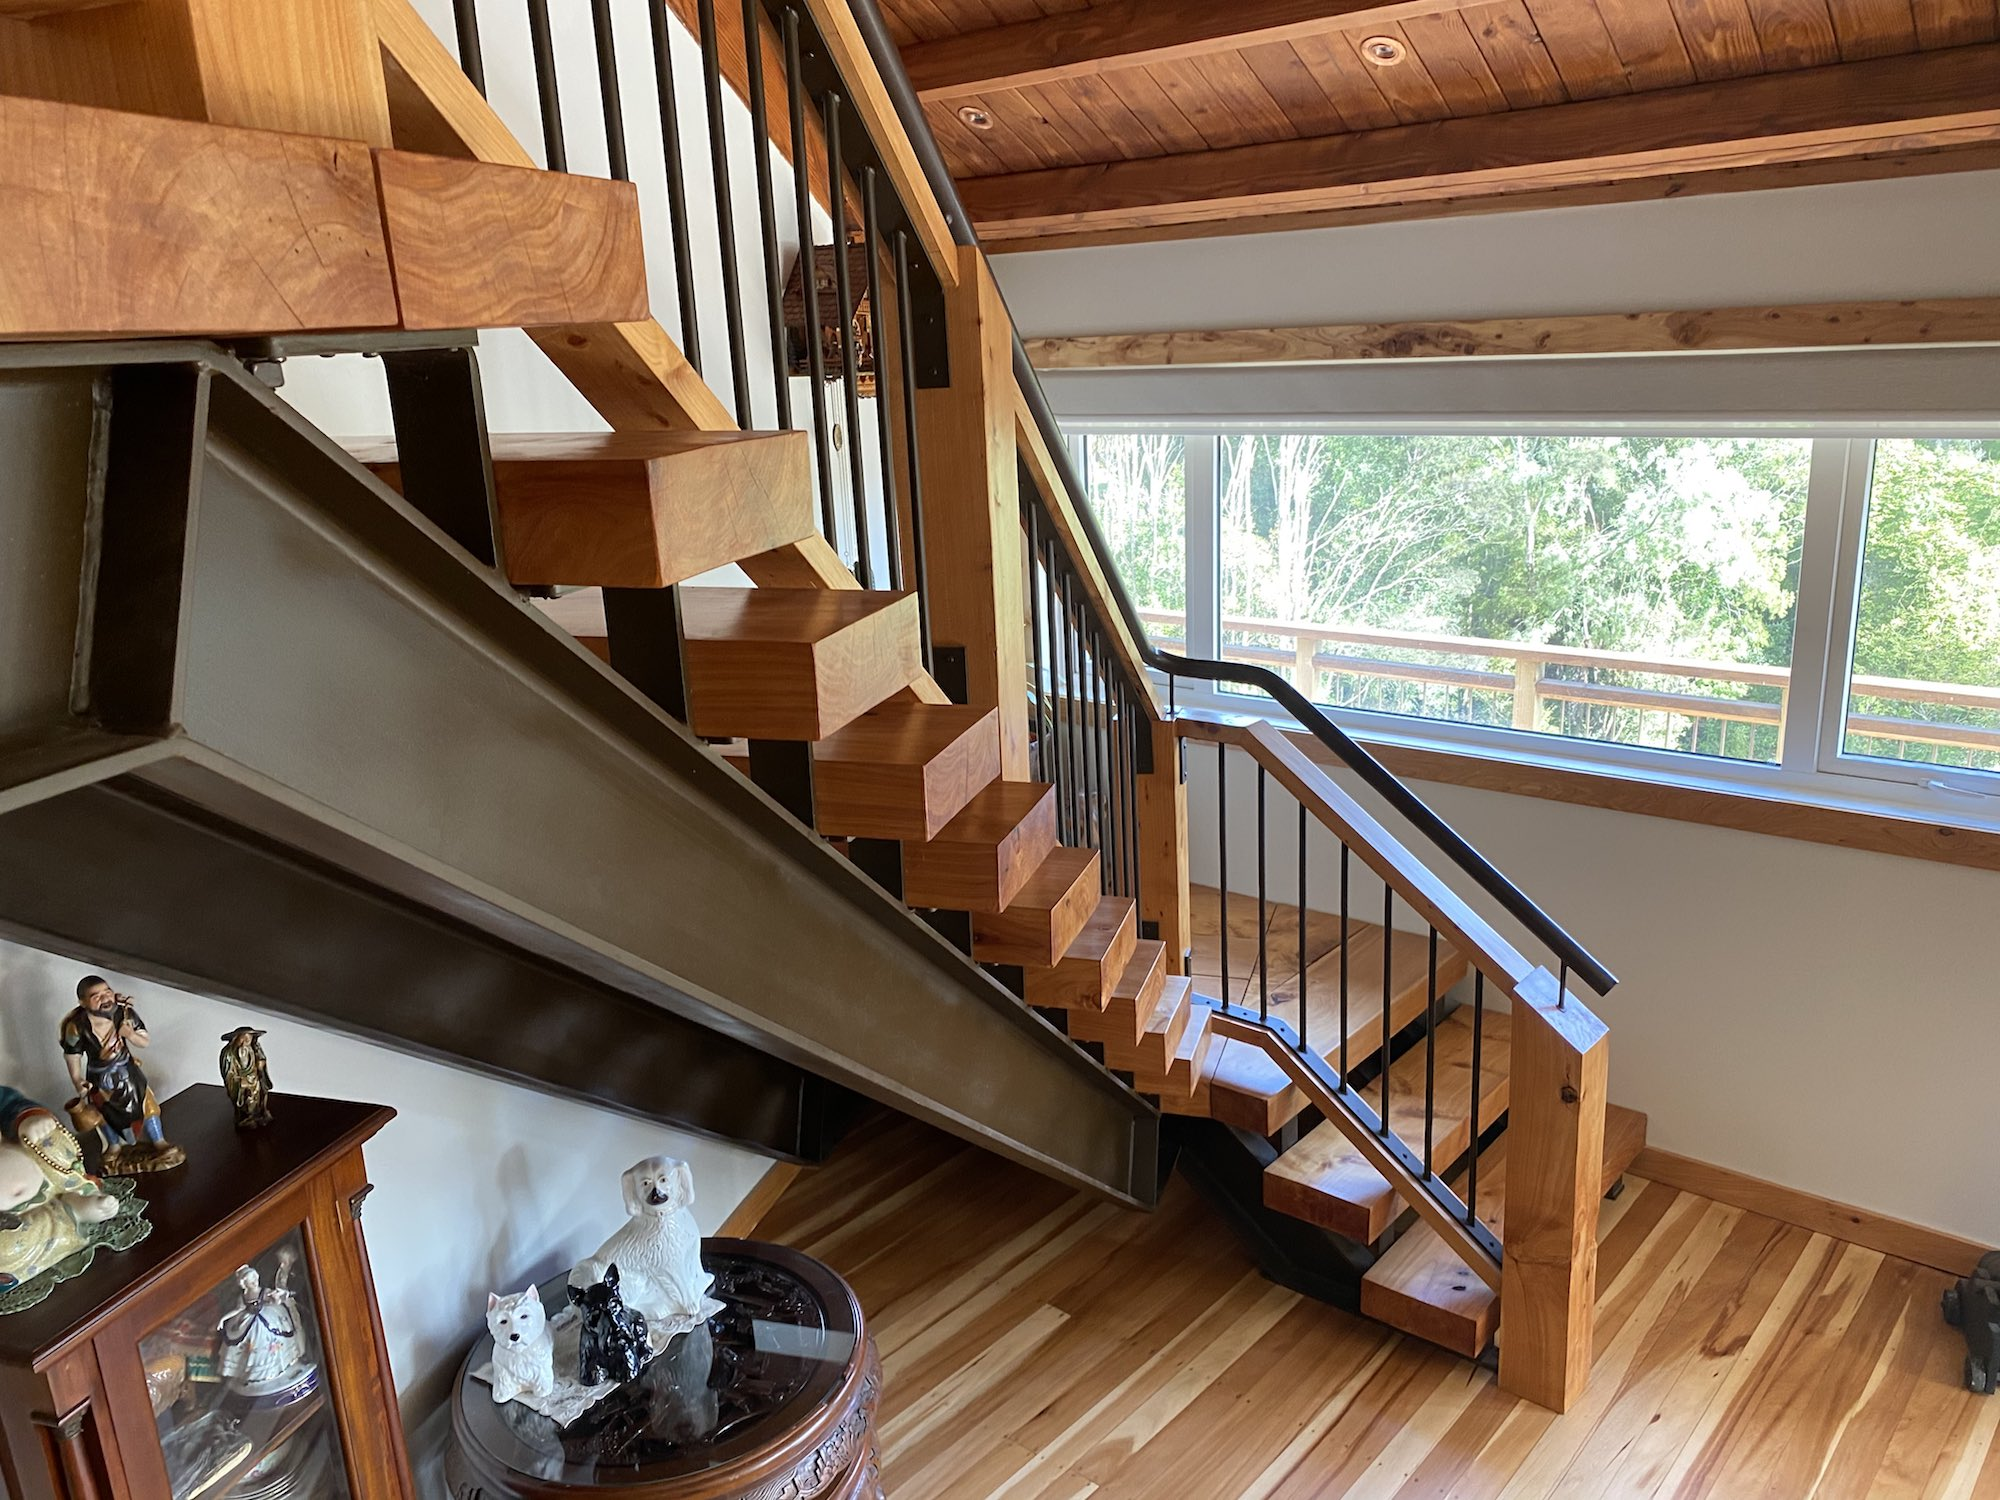 Reclaimed wood used for rustic style stairs in Auckland